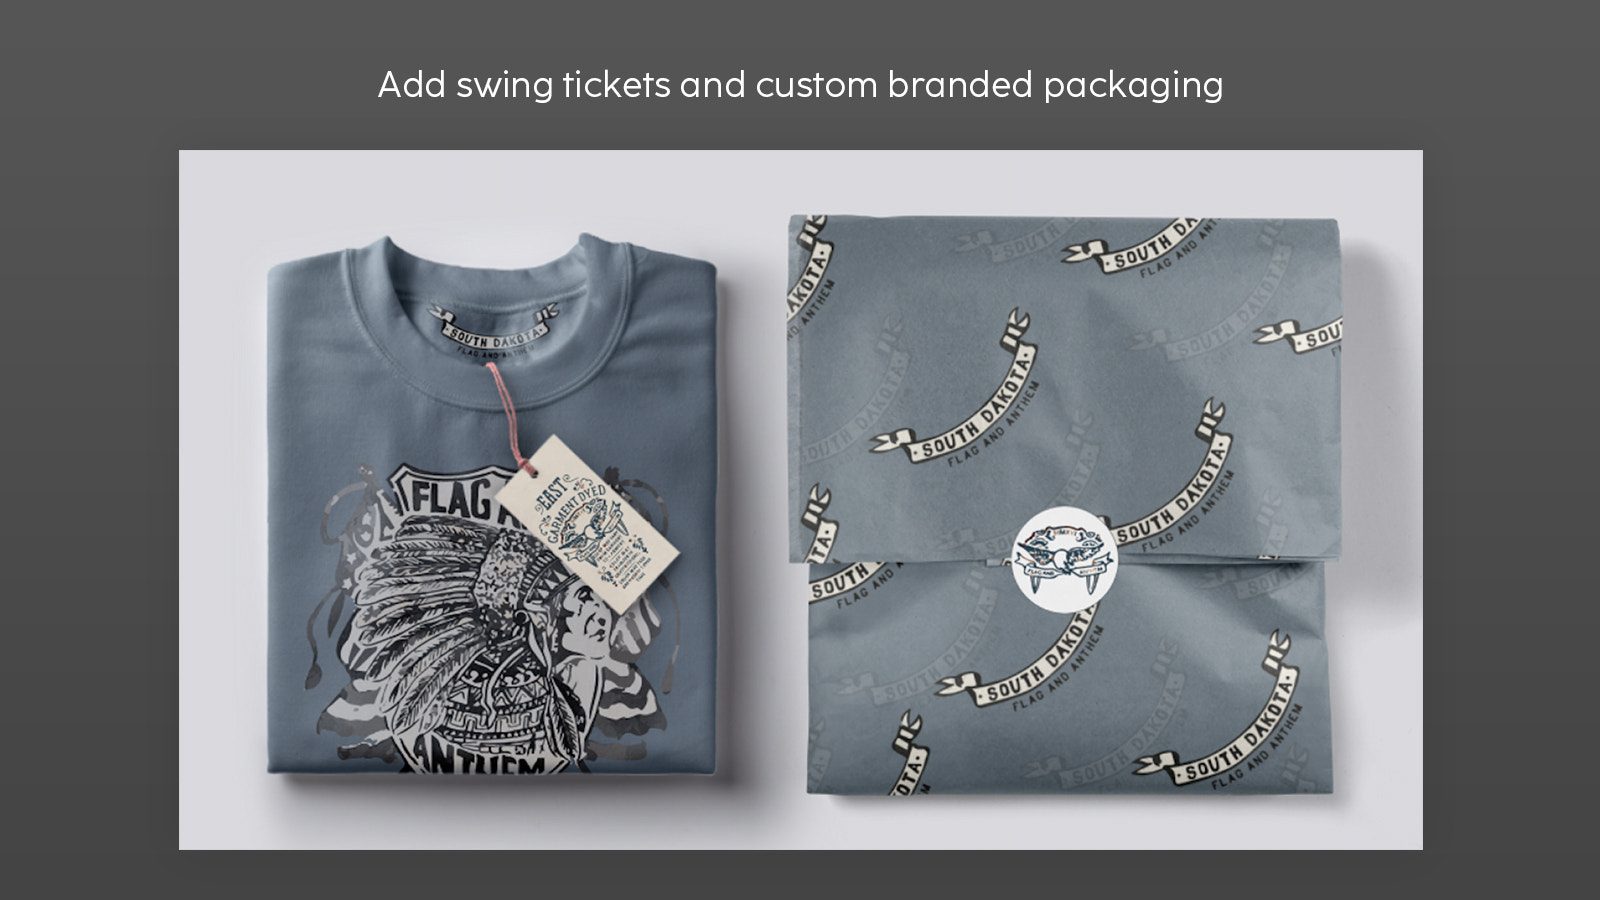 Add swing tickets and custom branded packaging